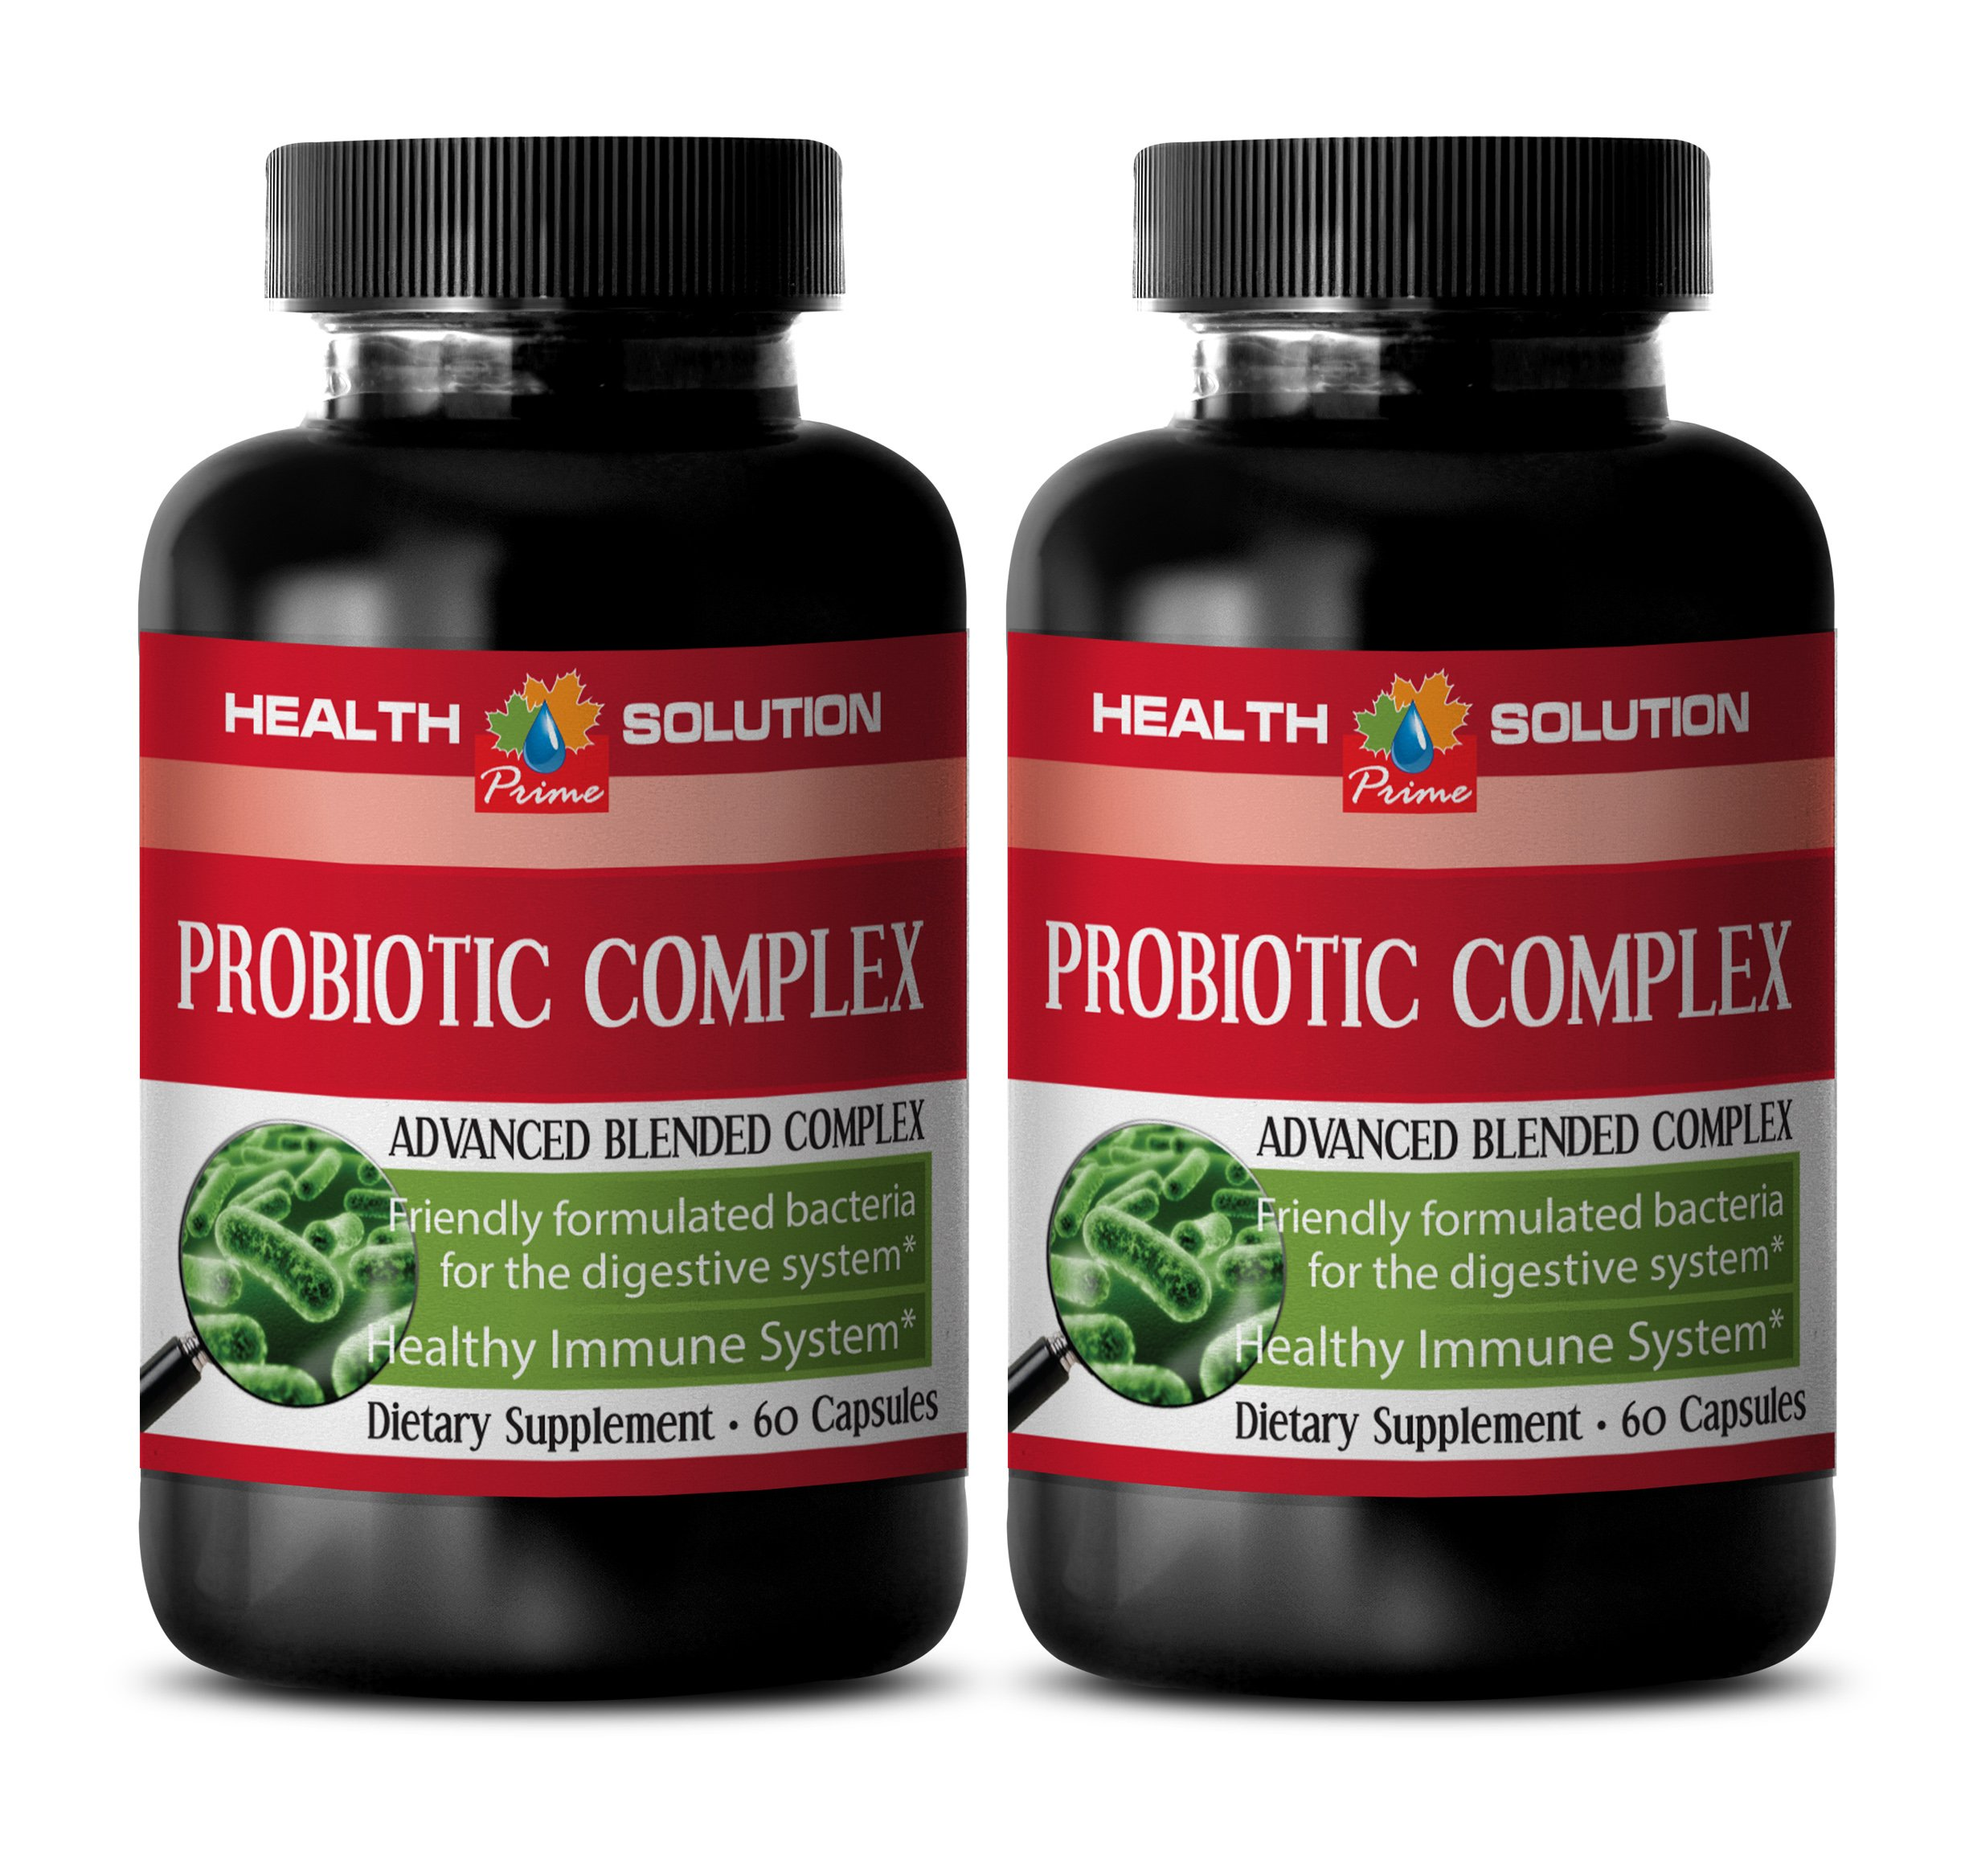 Probiotic women - PROBIOTIC COMPLEX 550MG - promote weight loss (2 Bottles) by Health Solution Prime